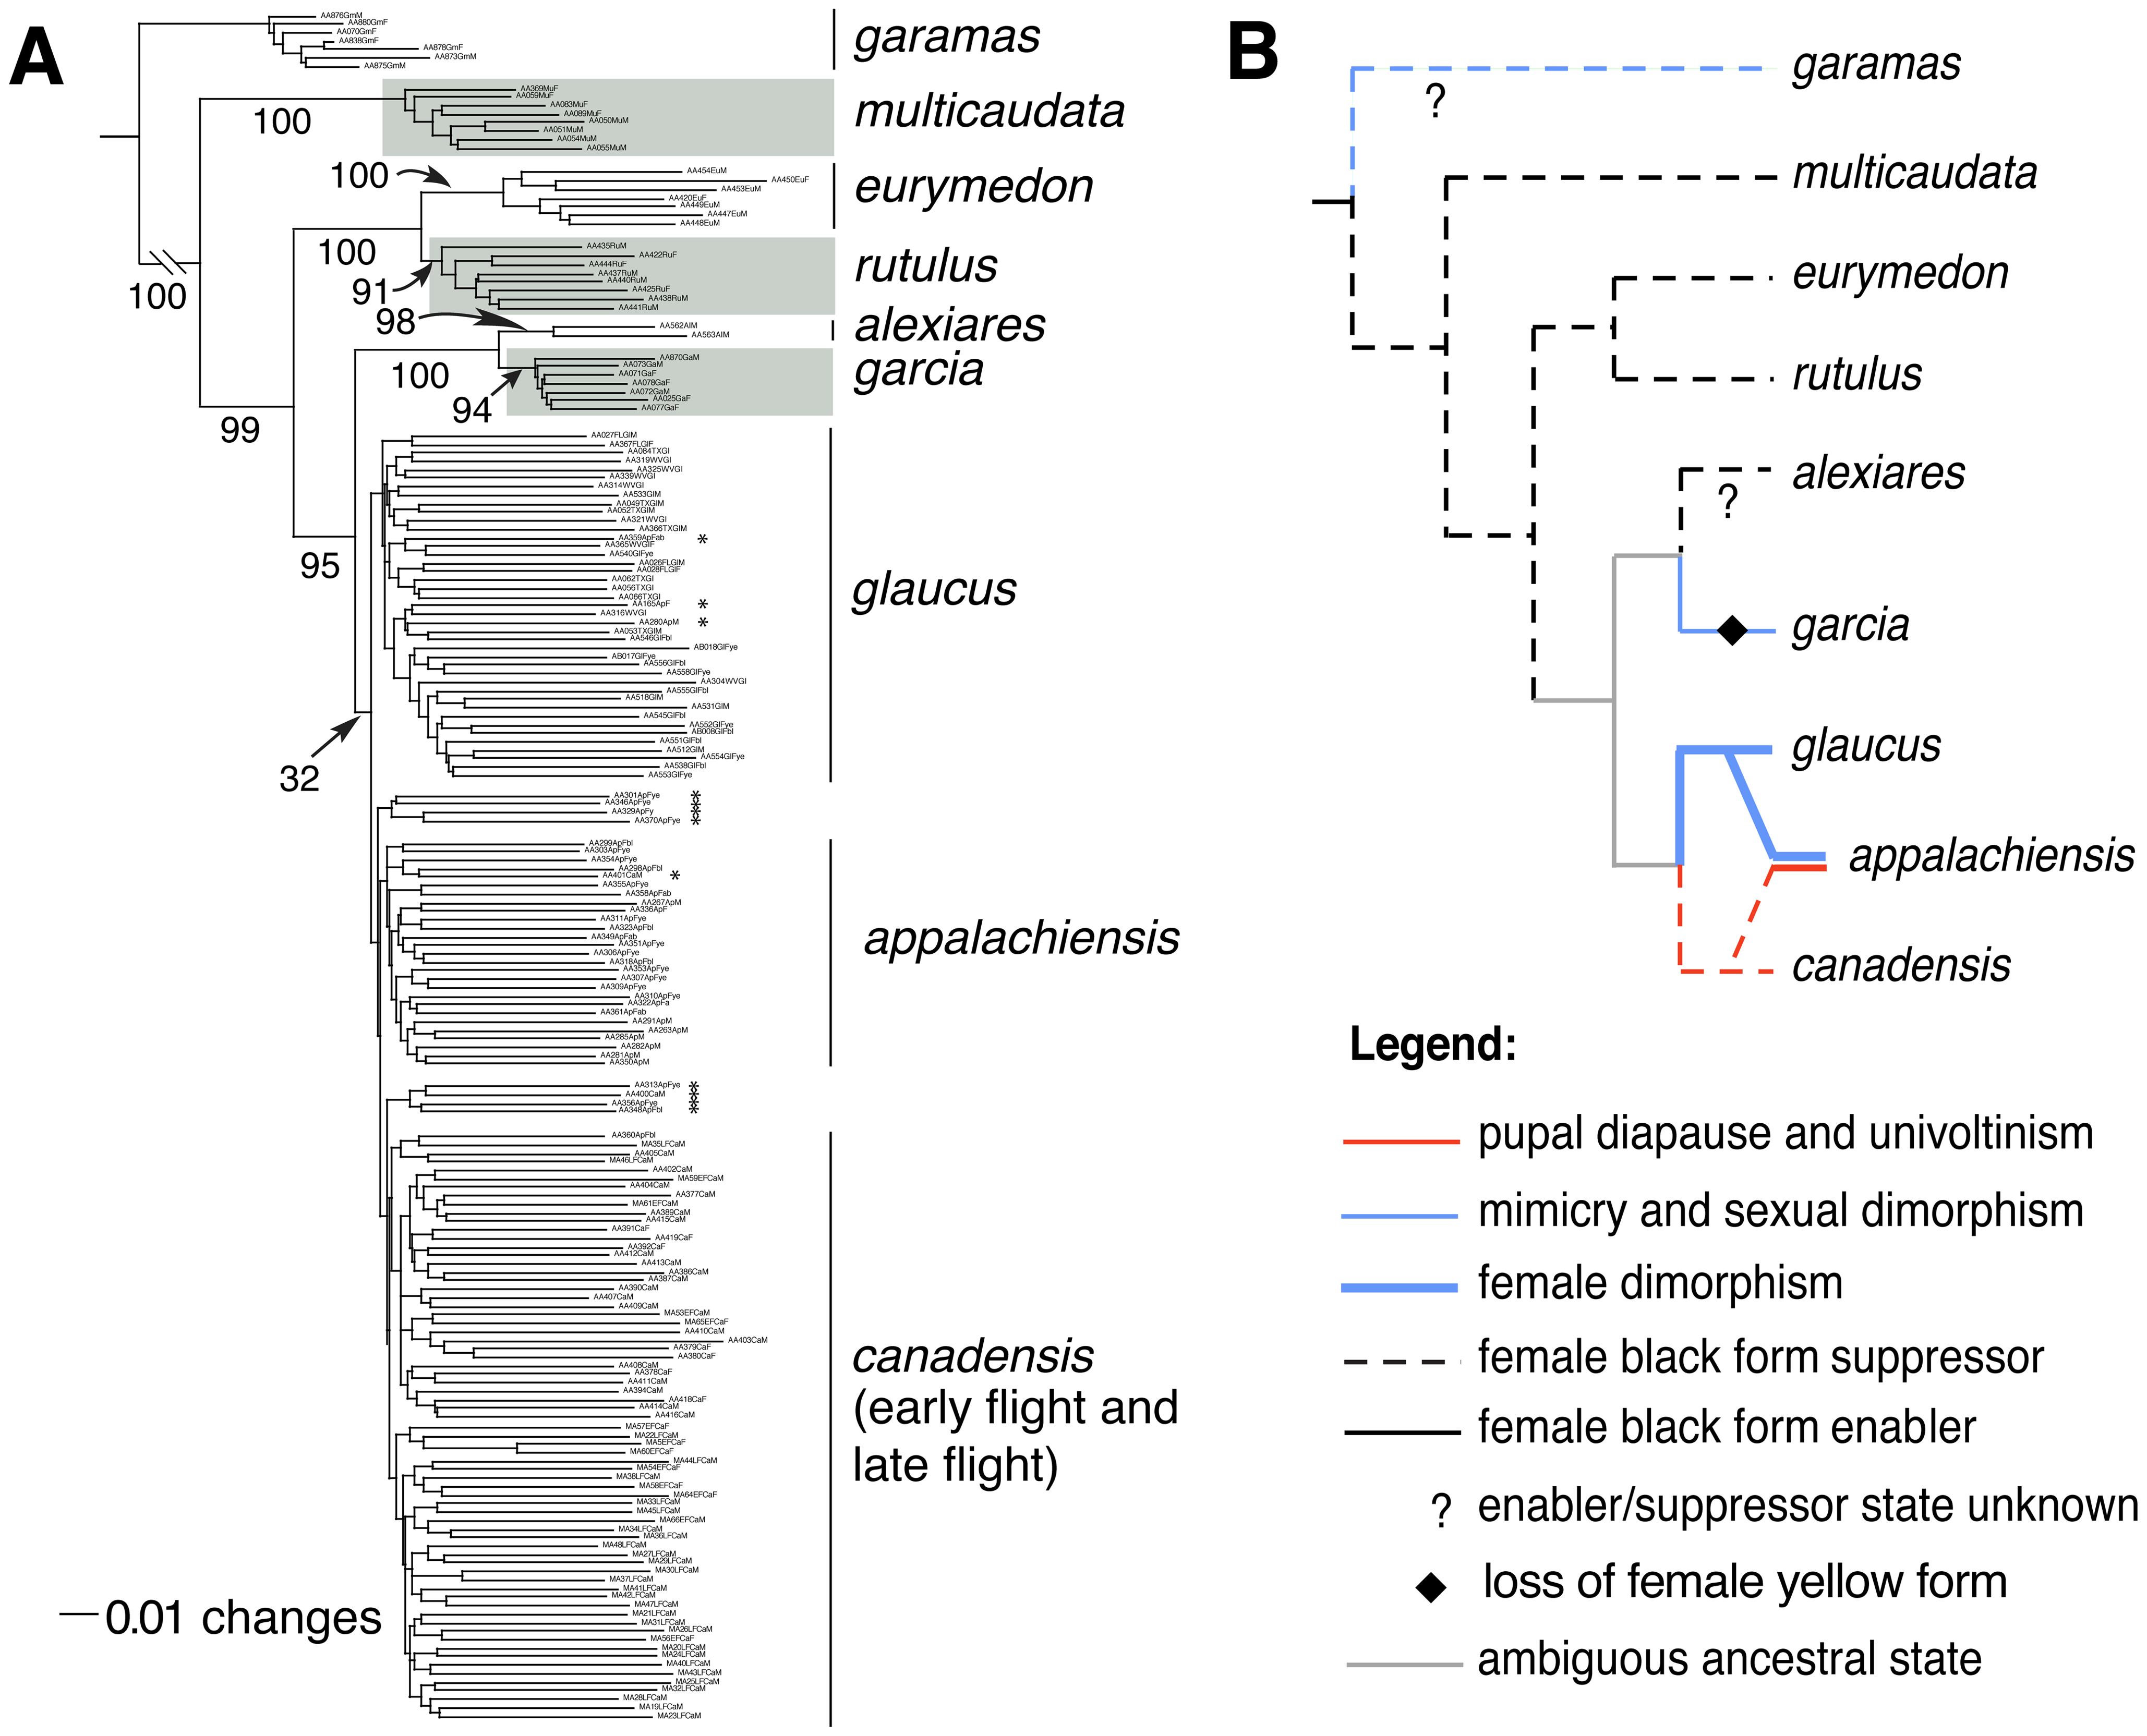 Phylogenetic relationships and character evolution among tiger swallowtails.